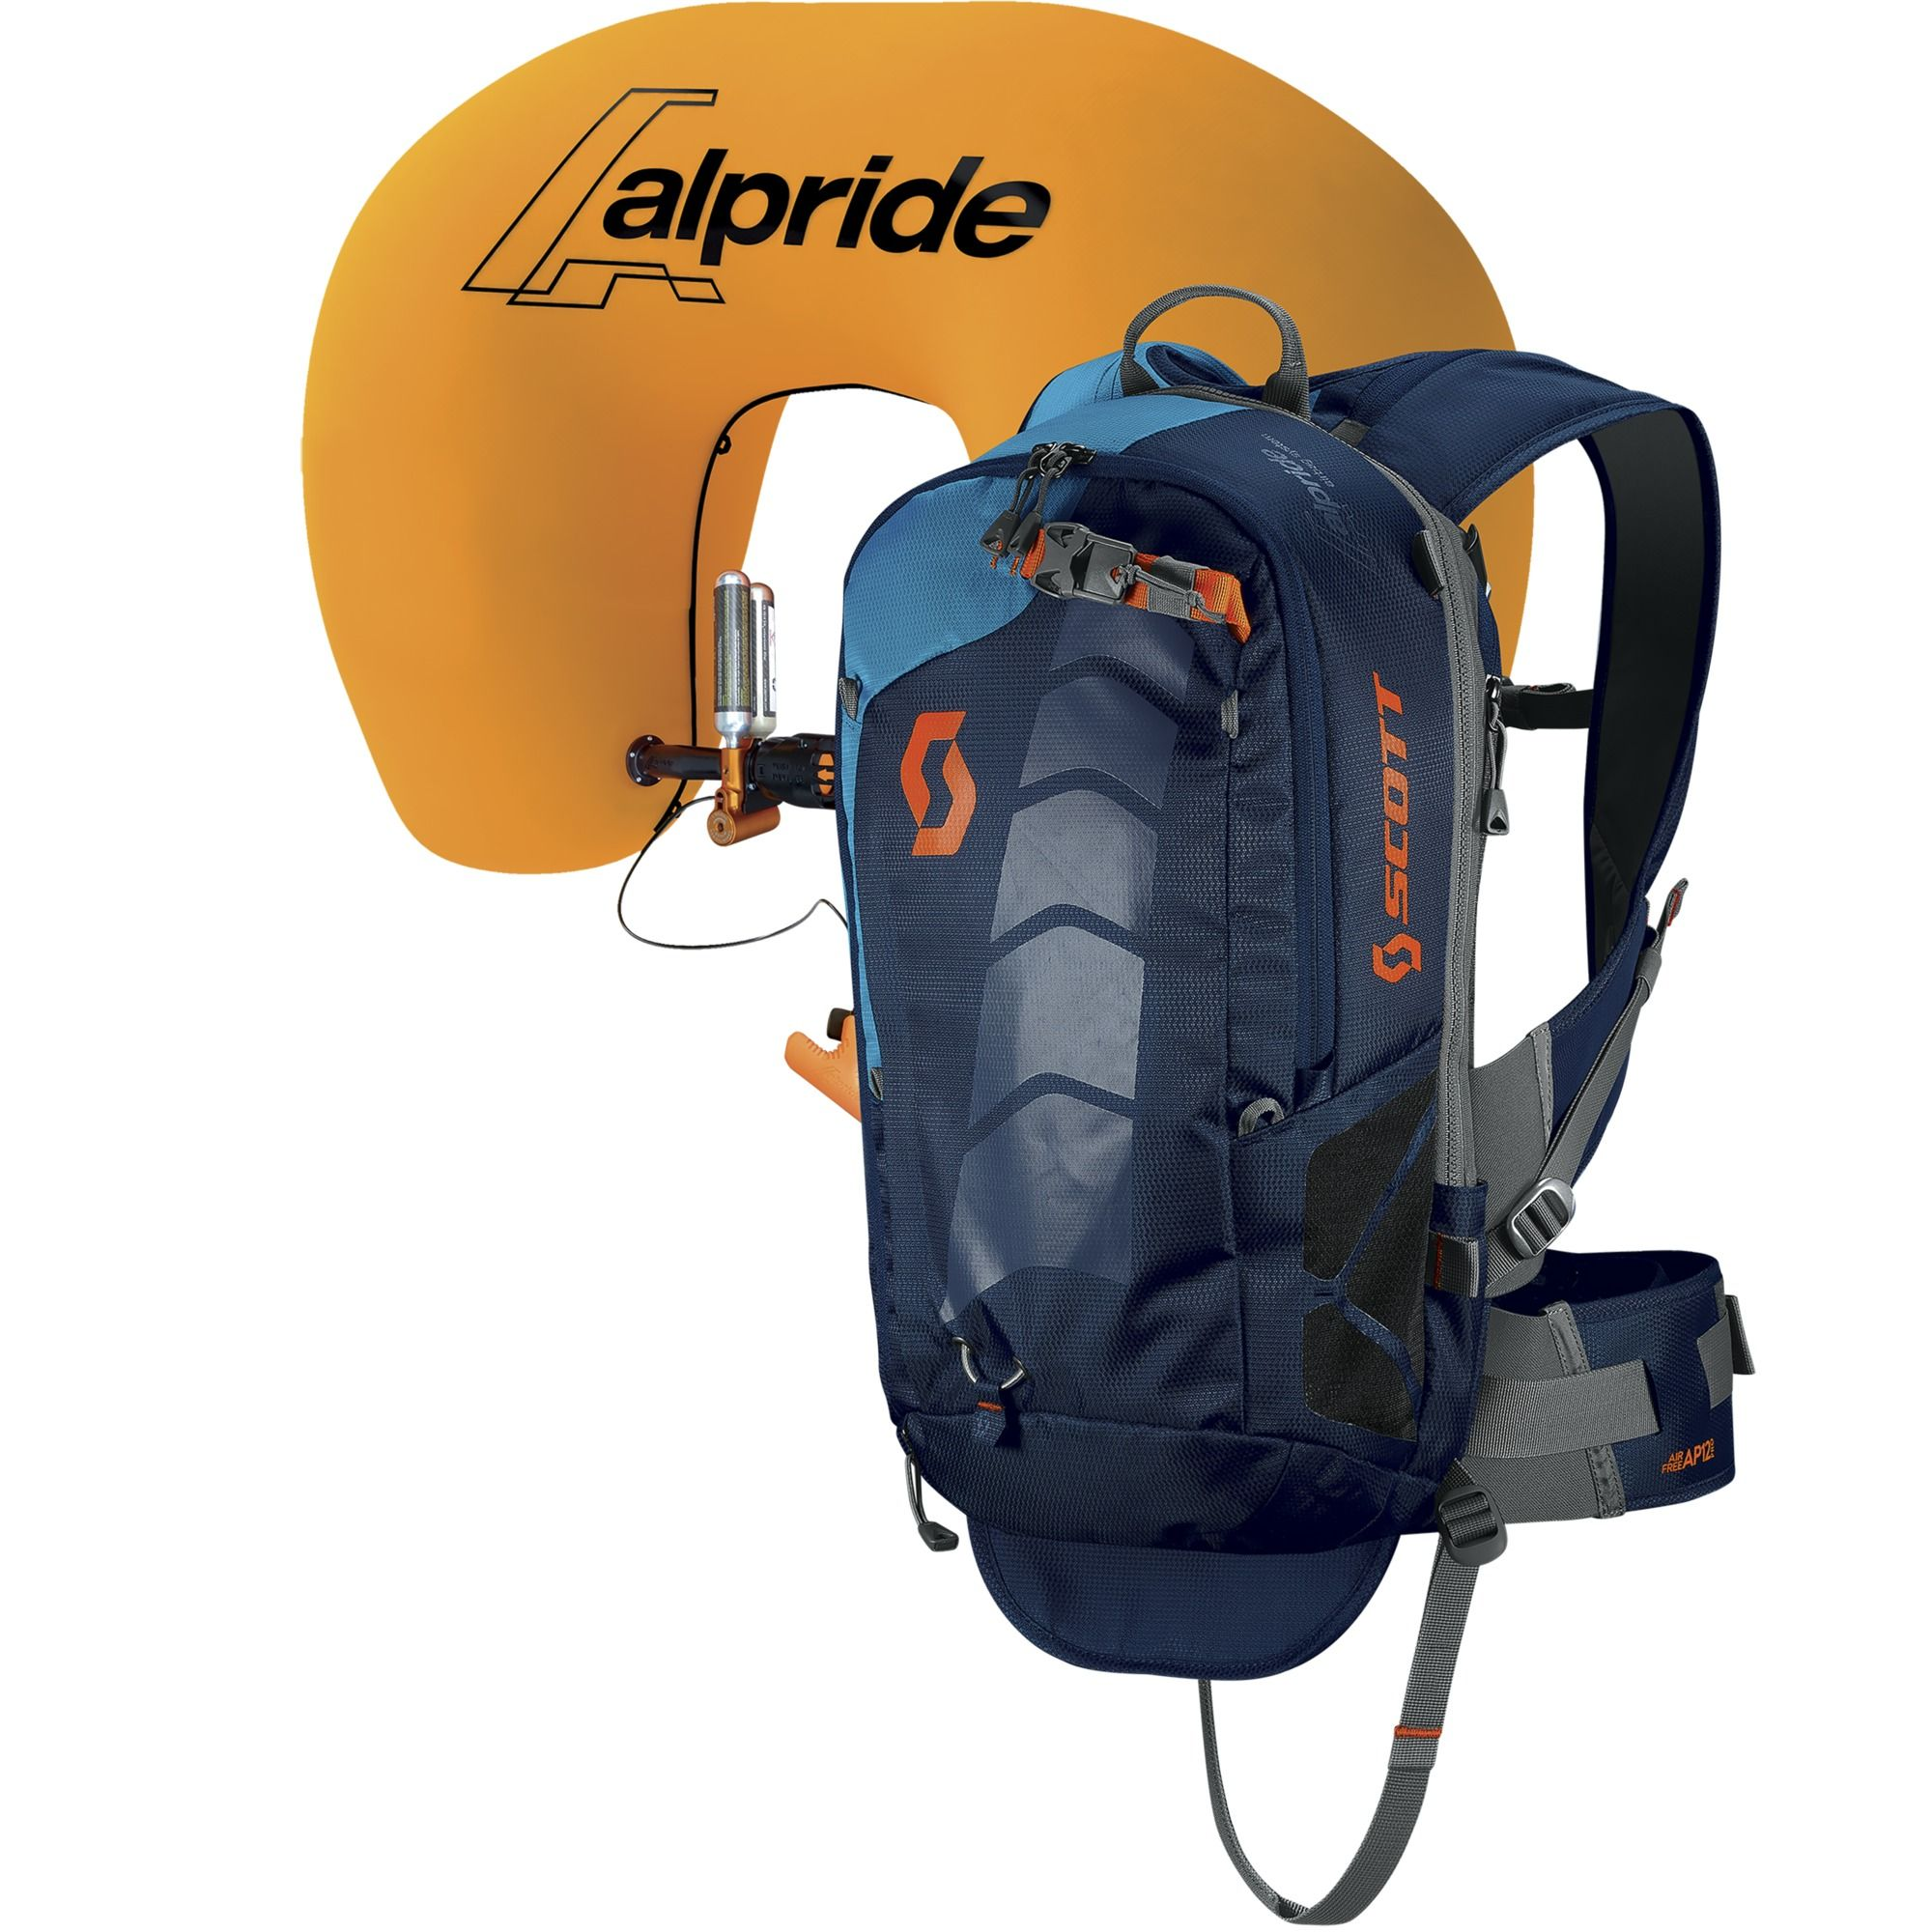 The SCOTT Air Free AP 12 Pro is a light and compact